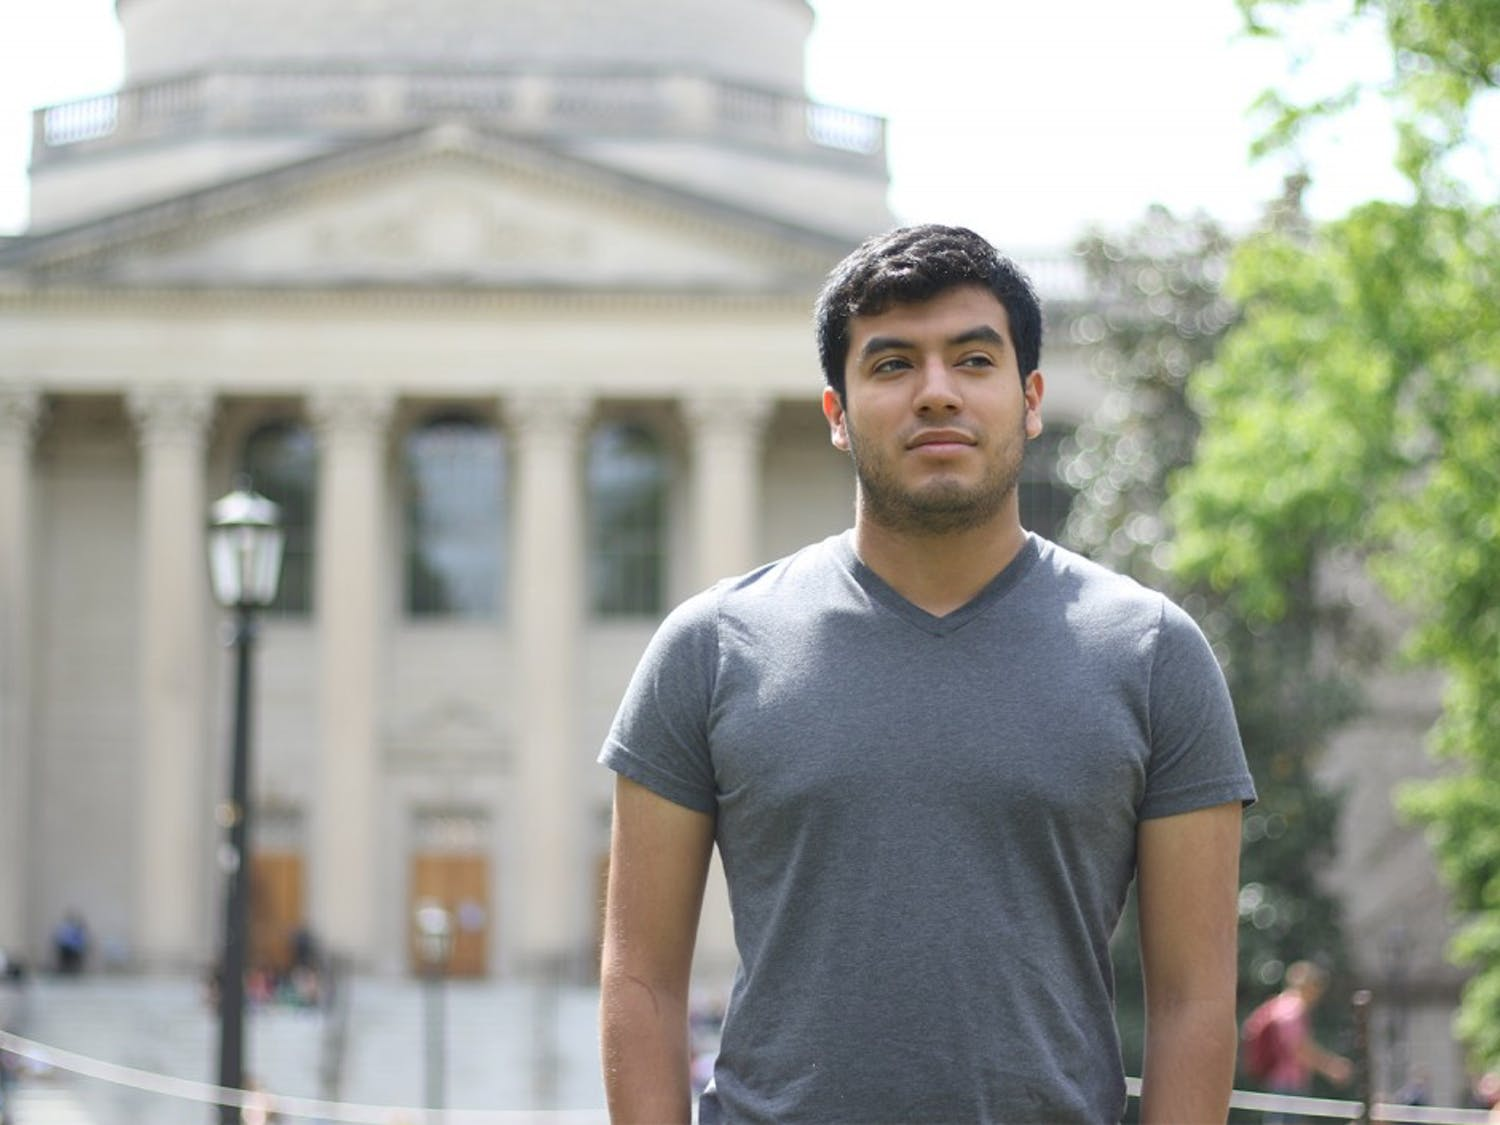 Eddy Fernandez, a first-year student hoping to major in Health Policy and Management, is a Carolina Covenant Scholar. The Covenant program makes education affordable for Carolina undergraduate students from low-income families.